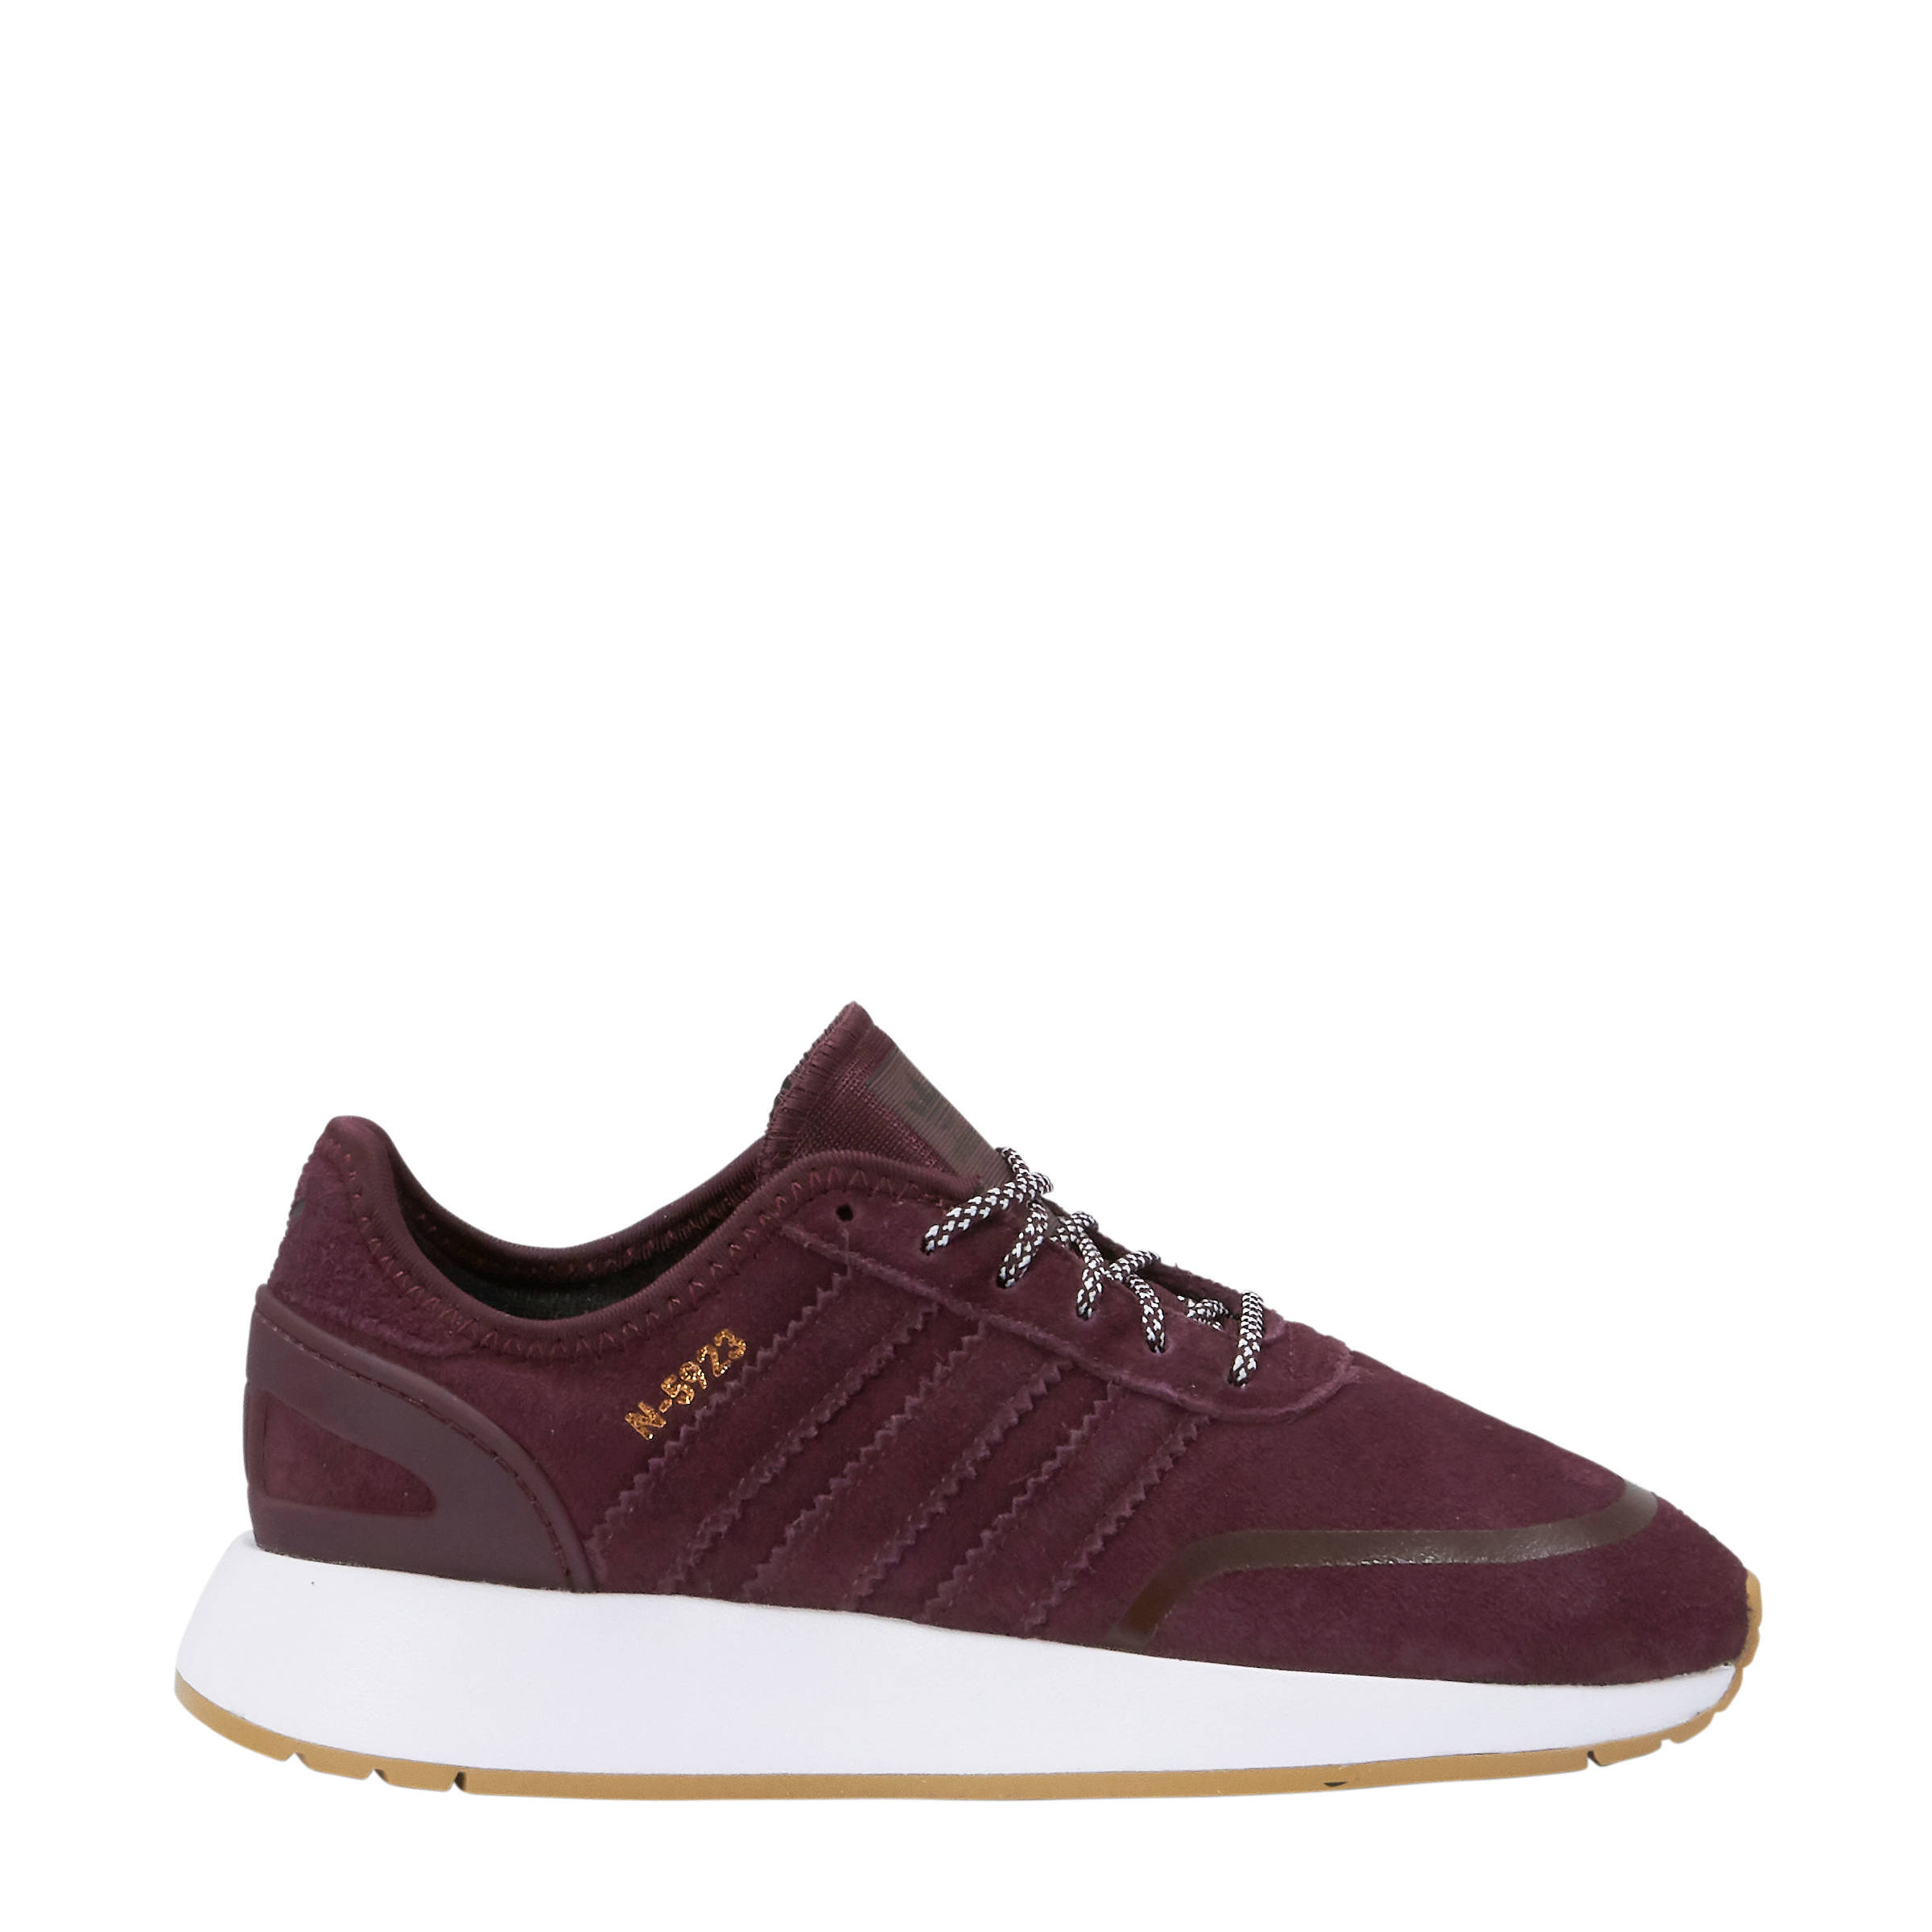 N 5923 J suède sneakers bordeauxrood